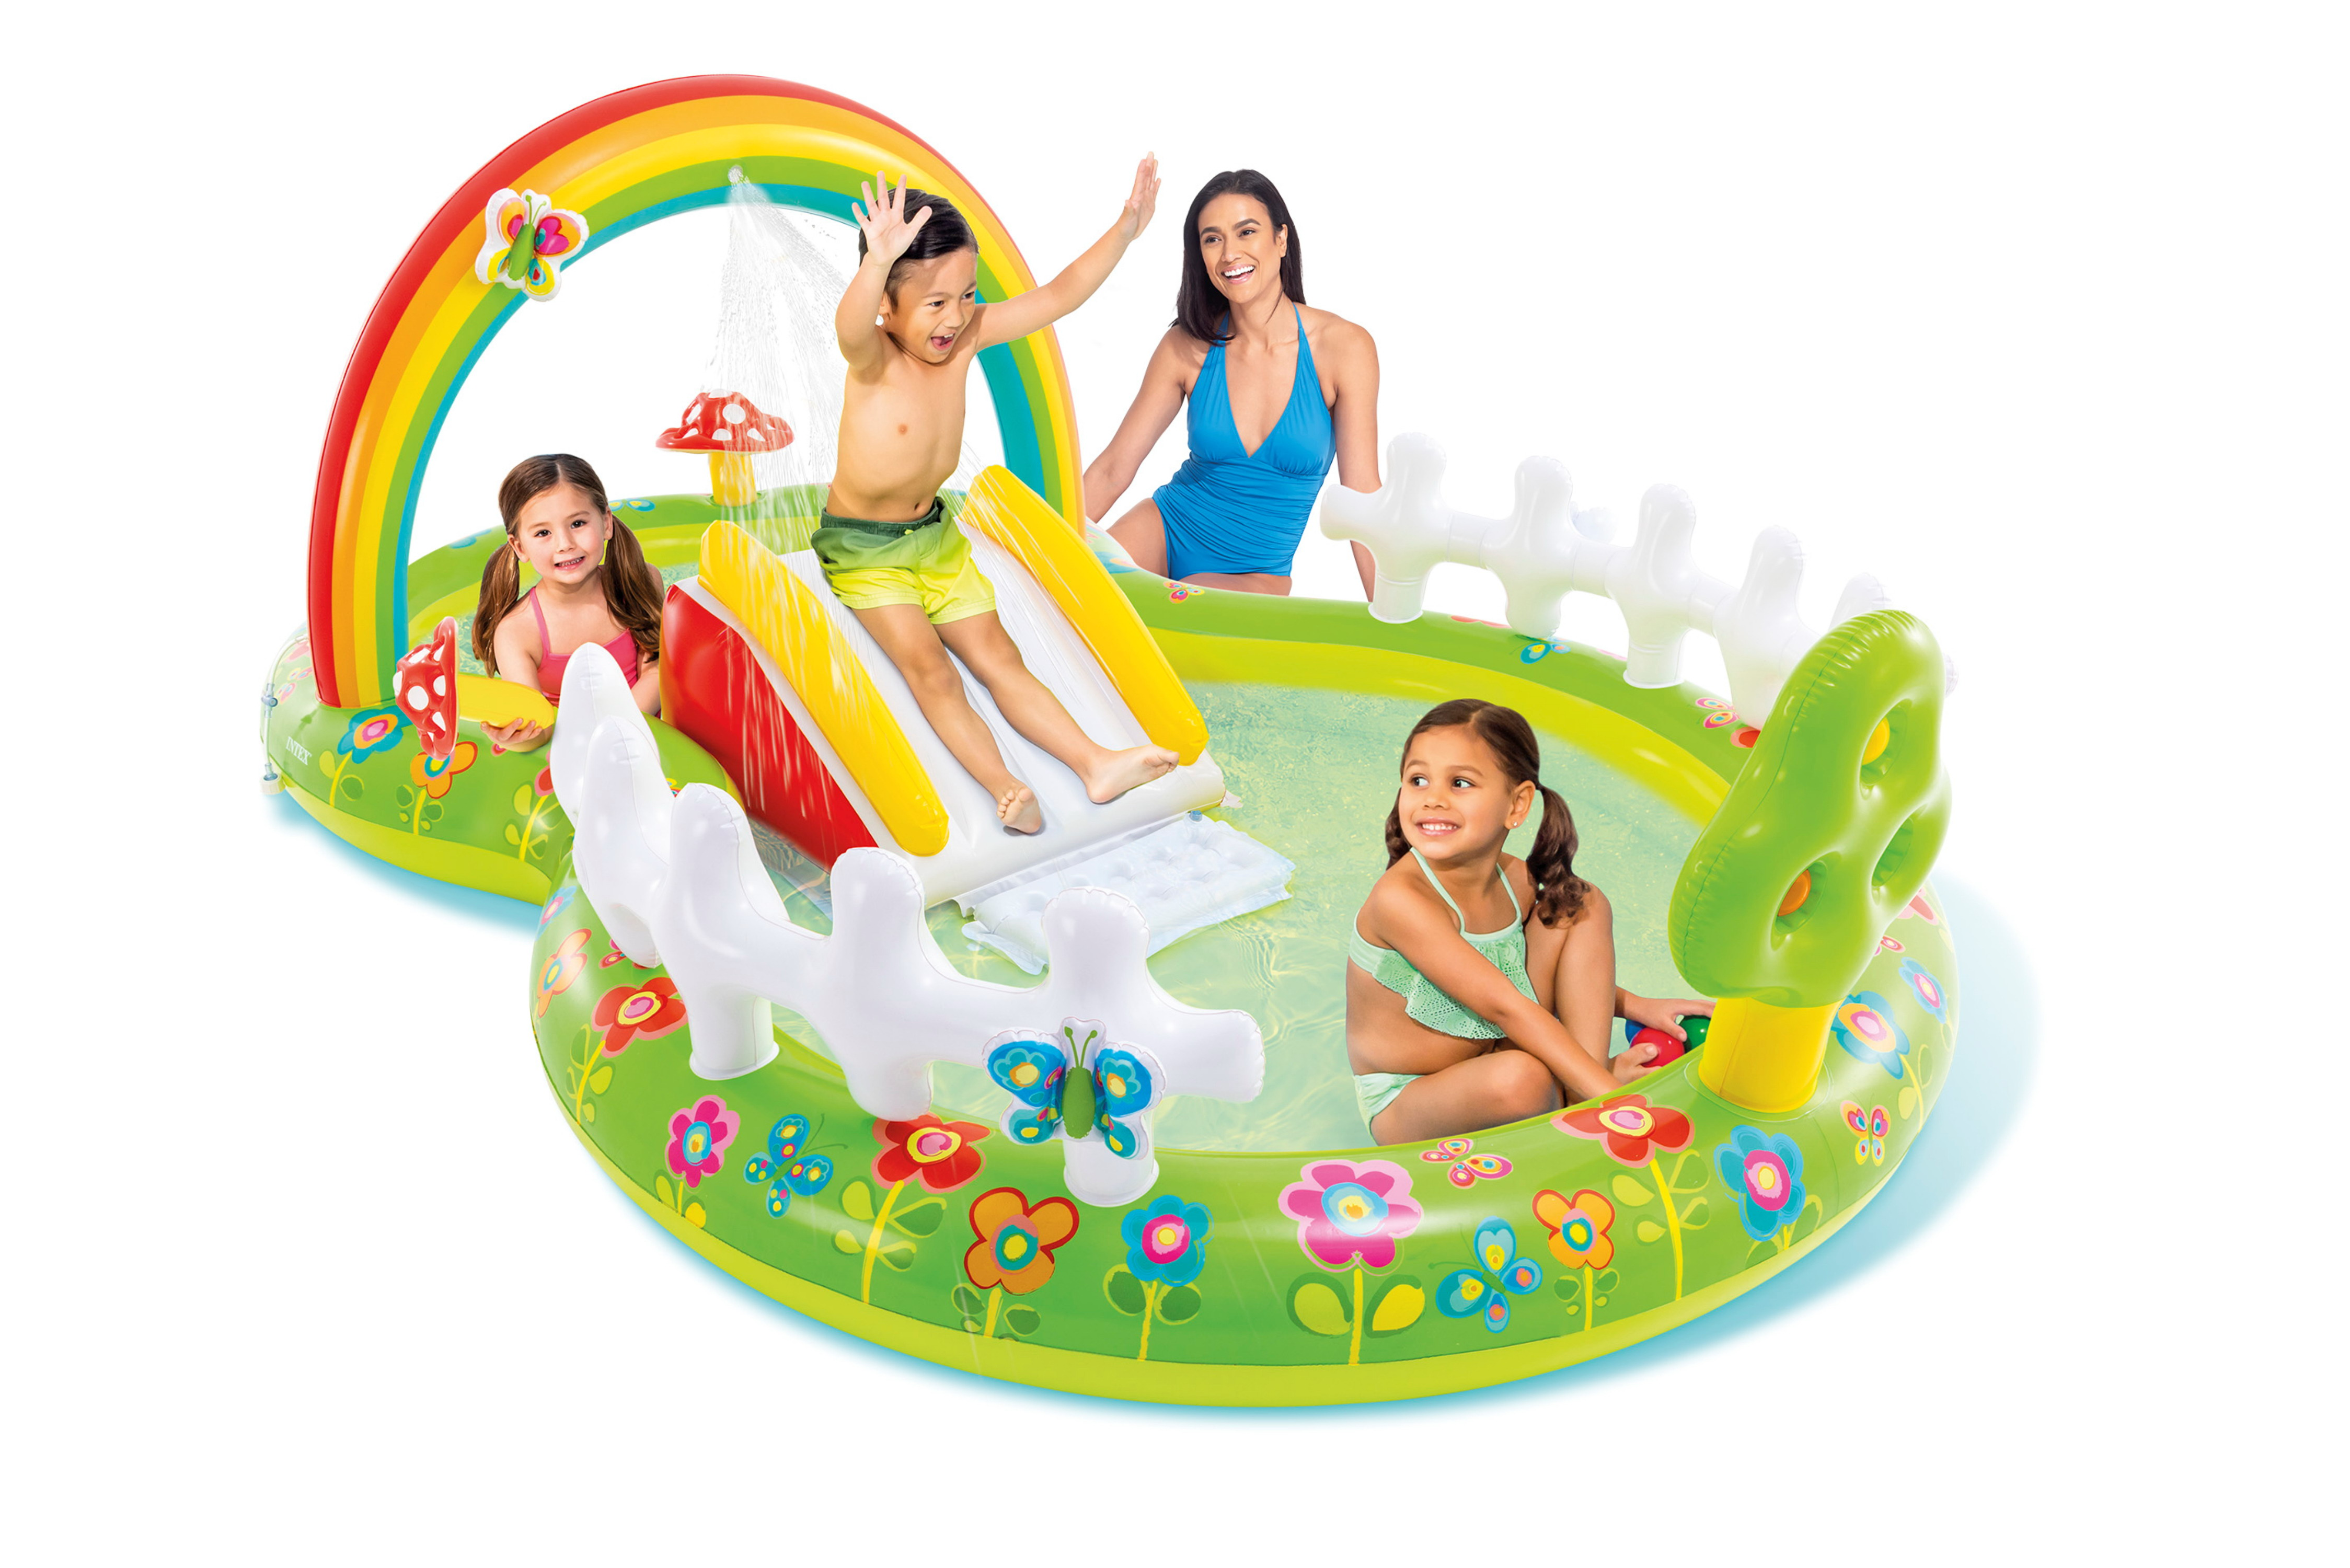 Intex Candy Zone Play Centre Kids Inflatable Garden Fun Outdoor Paddling Pool